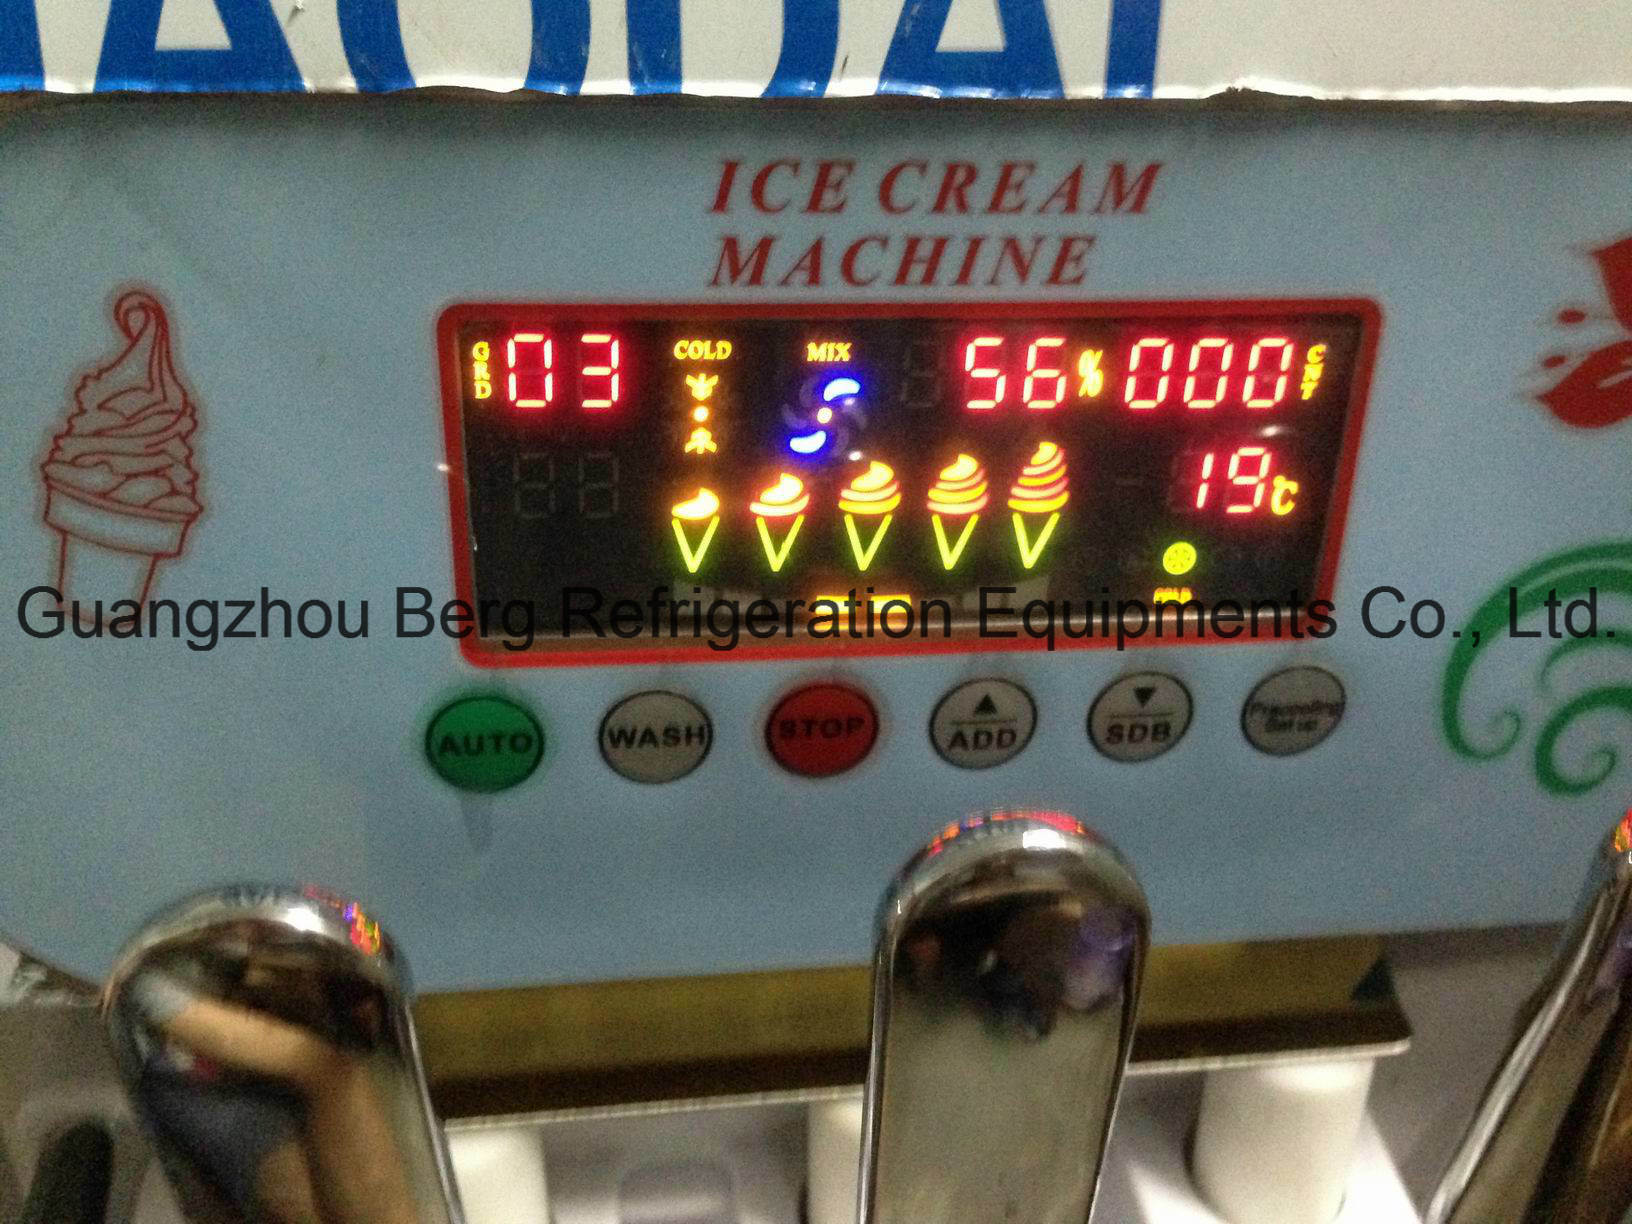 Factory Price 2+1mixed Flavours Soft Ice Cream Machine